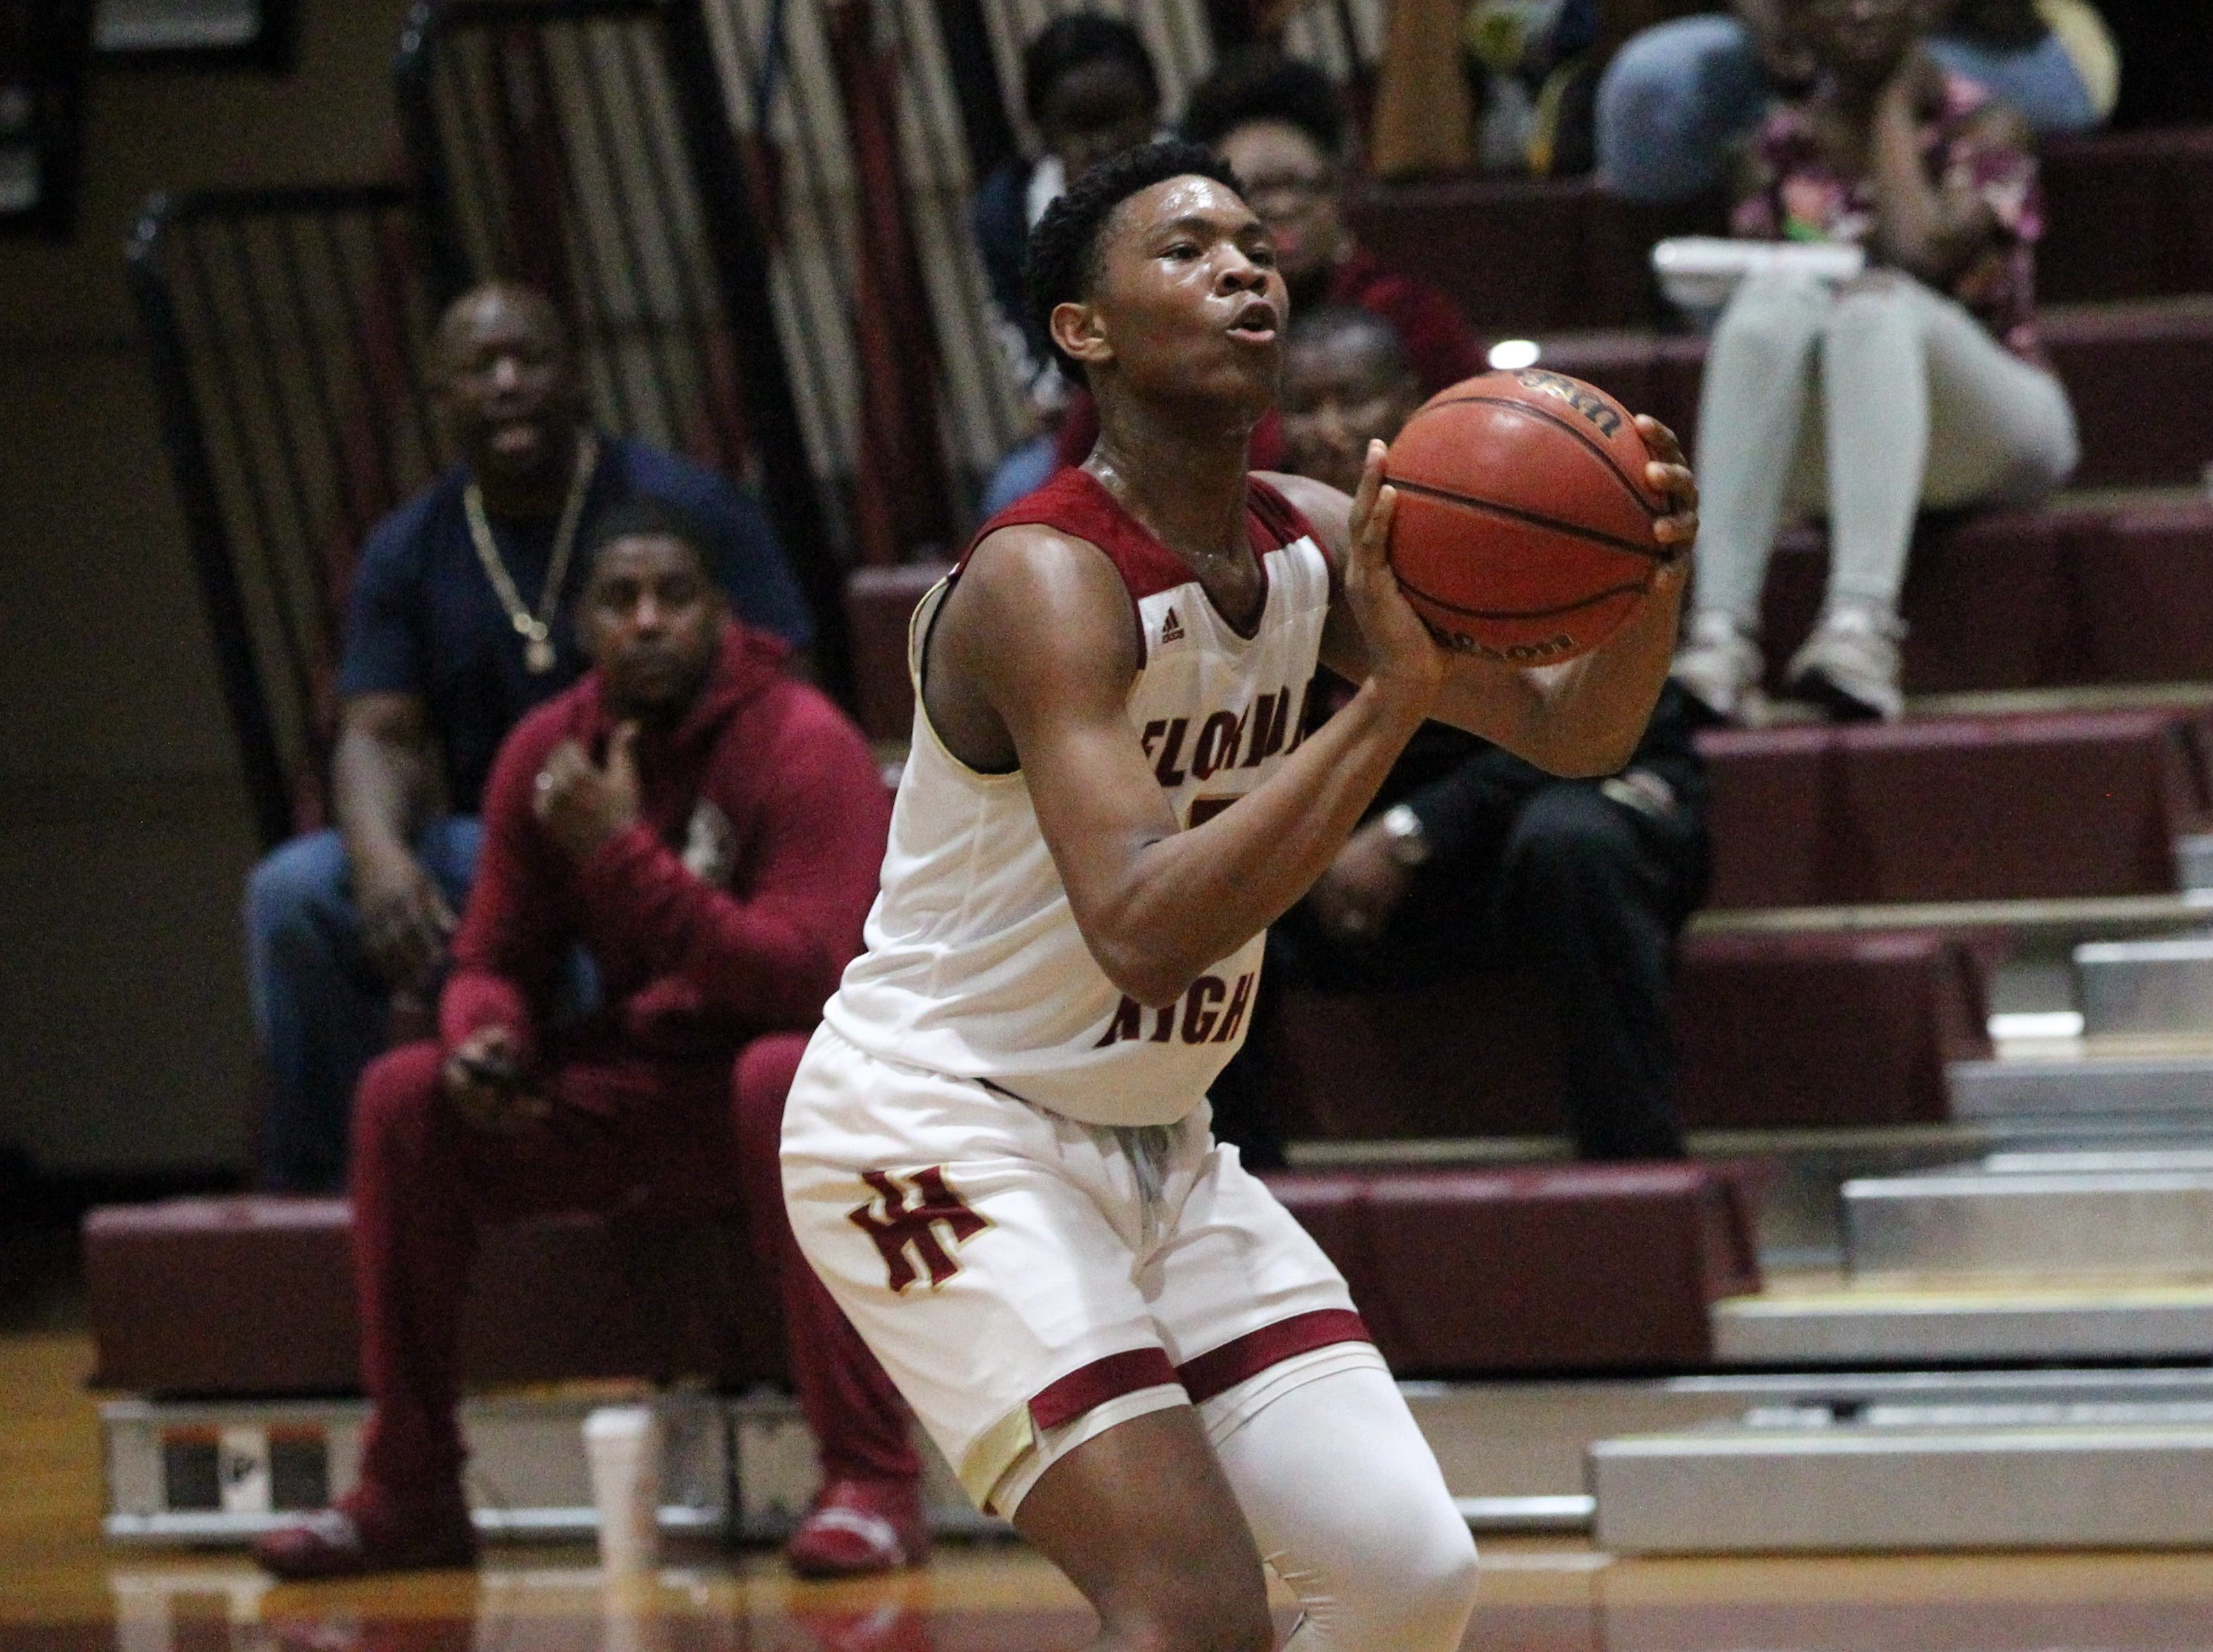 Florida High freshman Jaylen Martin sizes up a 3-pointer as the Seminoles beat Pensacola Catholic 47-42 during a Region 1-5A quarterfinal on Feb. 21, 2019.